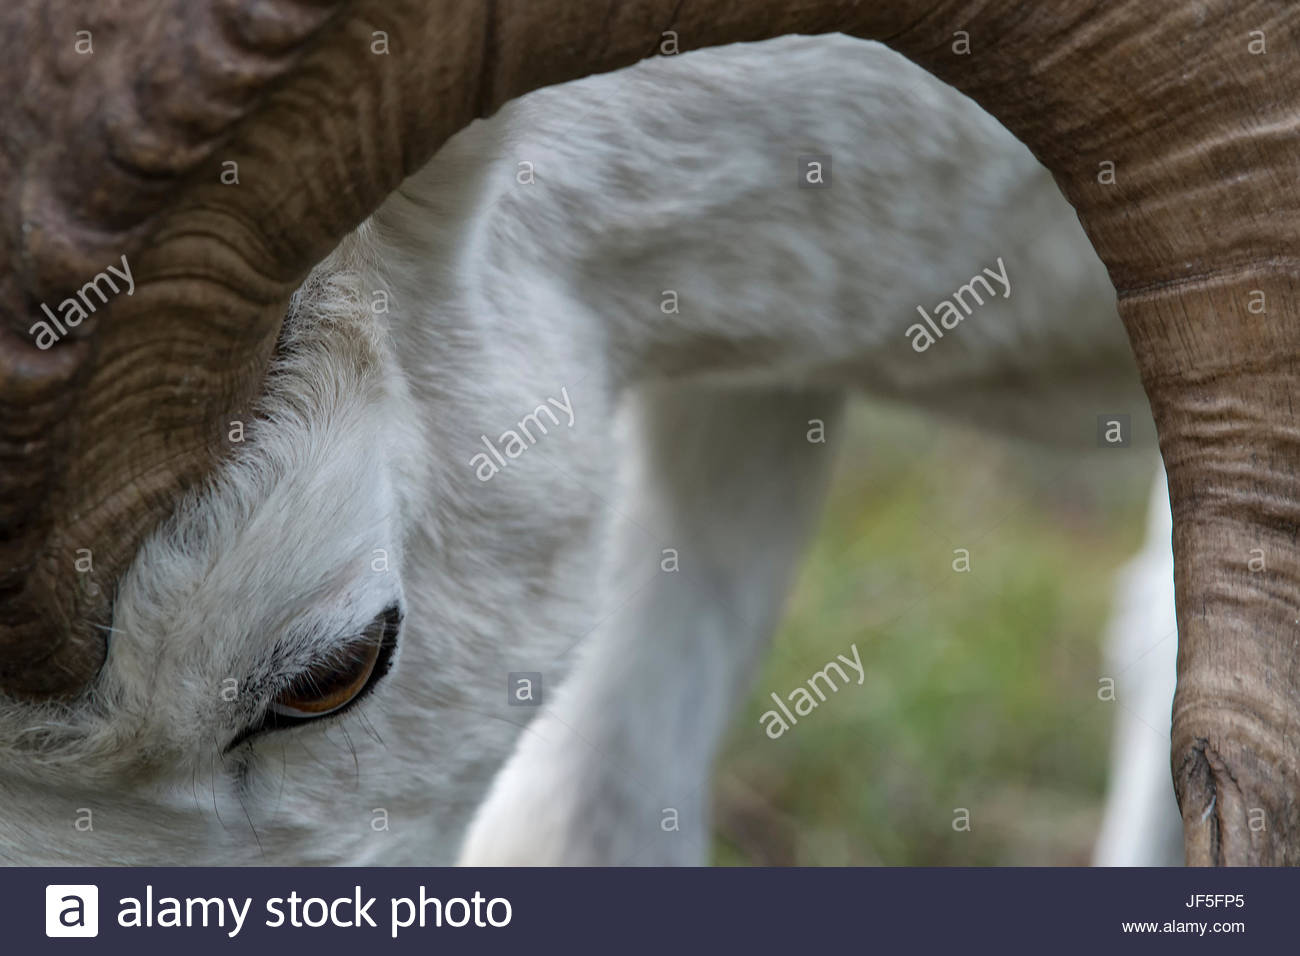 Close up of the head and antlers of a Dall's sheep, Ovis dalli. - Stock Image